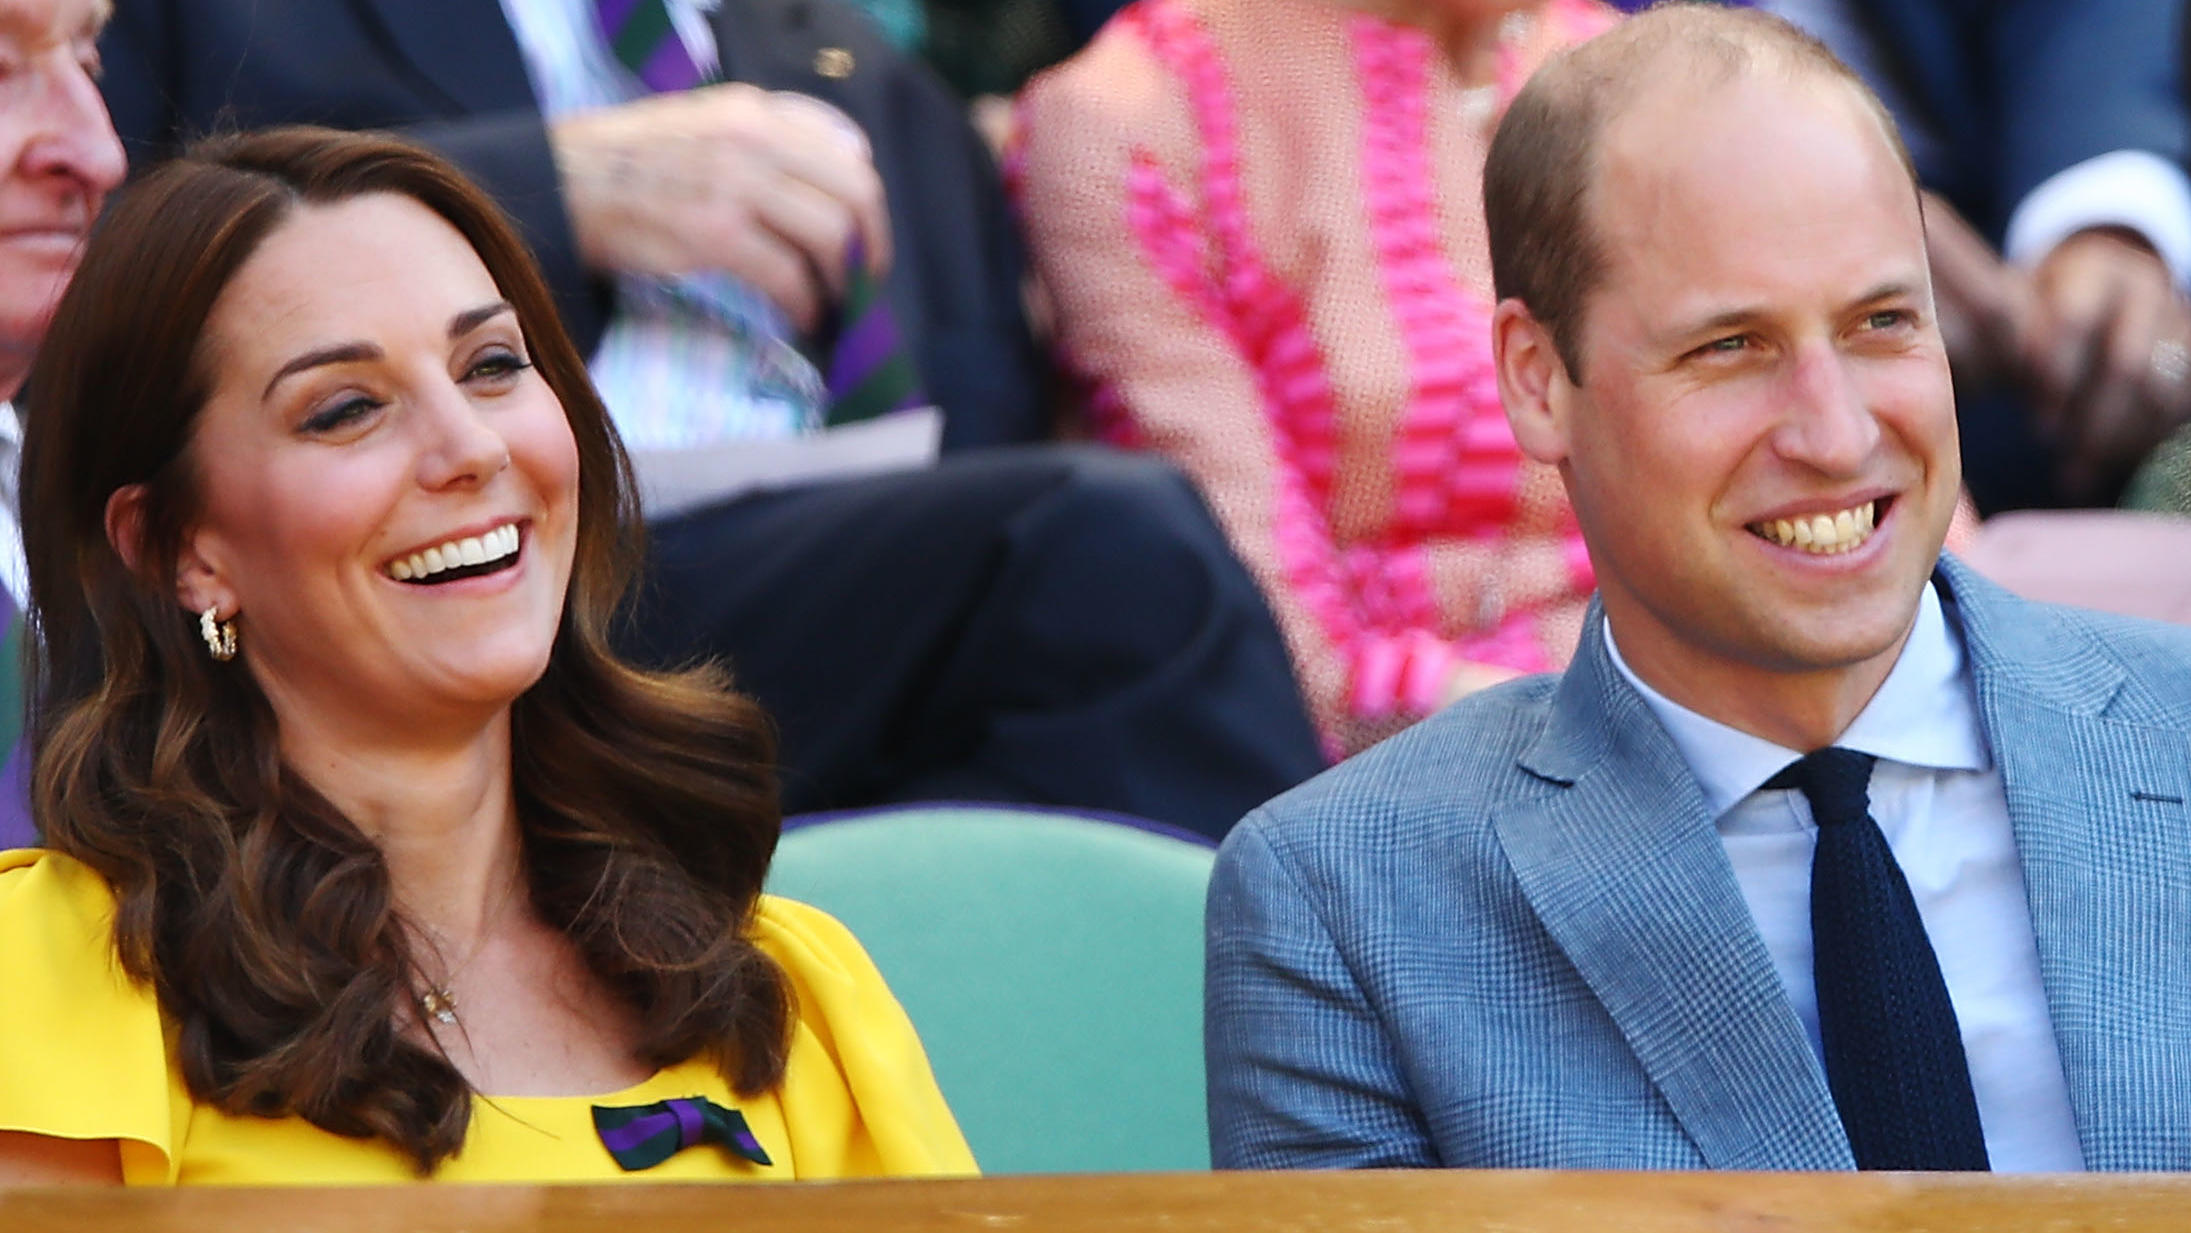 Herzogin Kate und Prinz William in Wimbledon